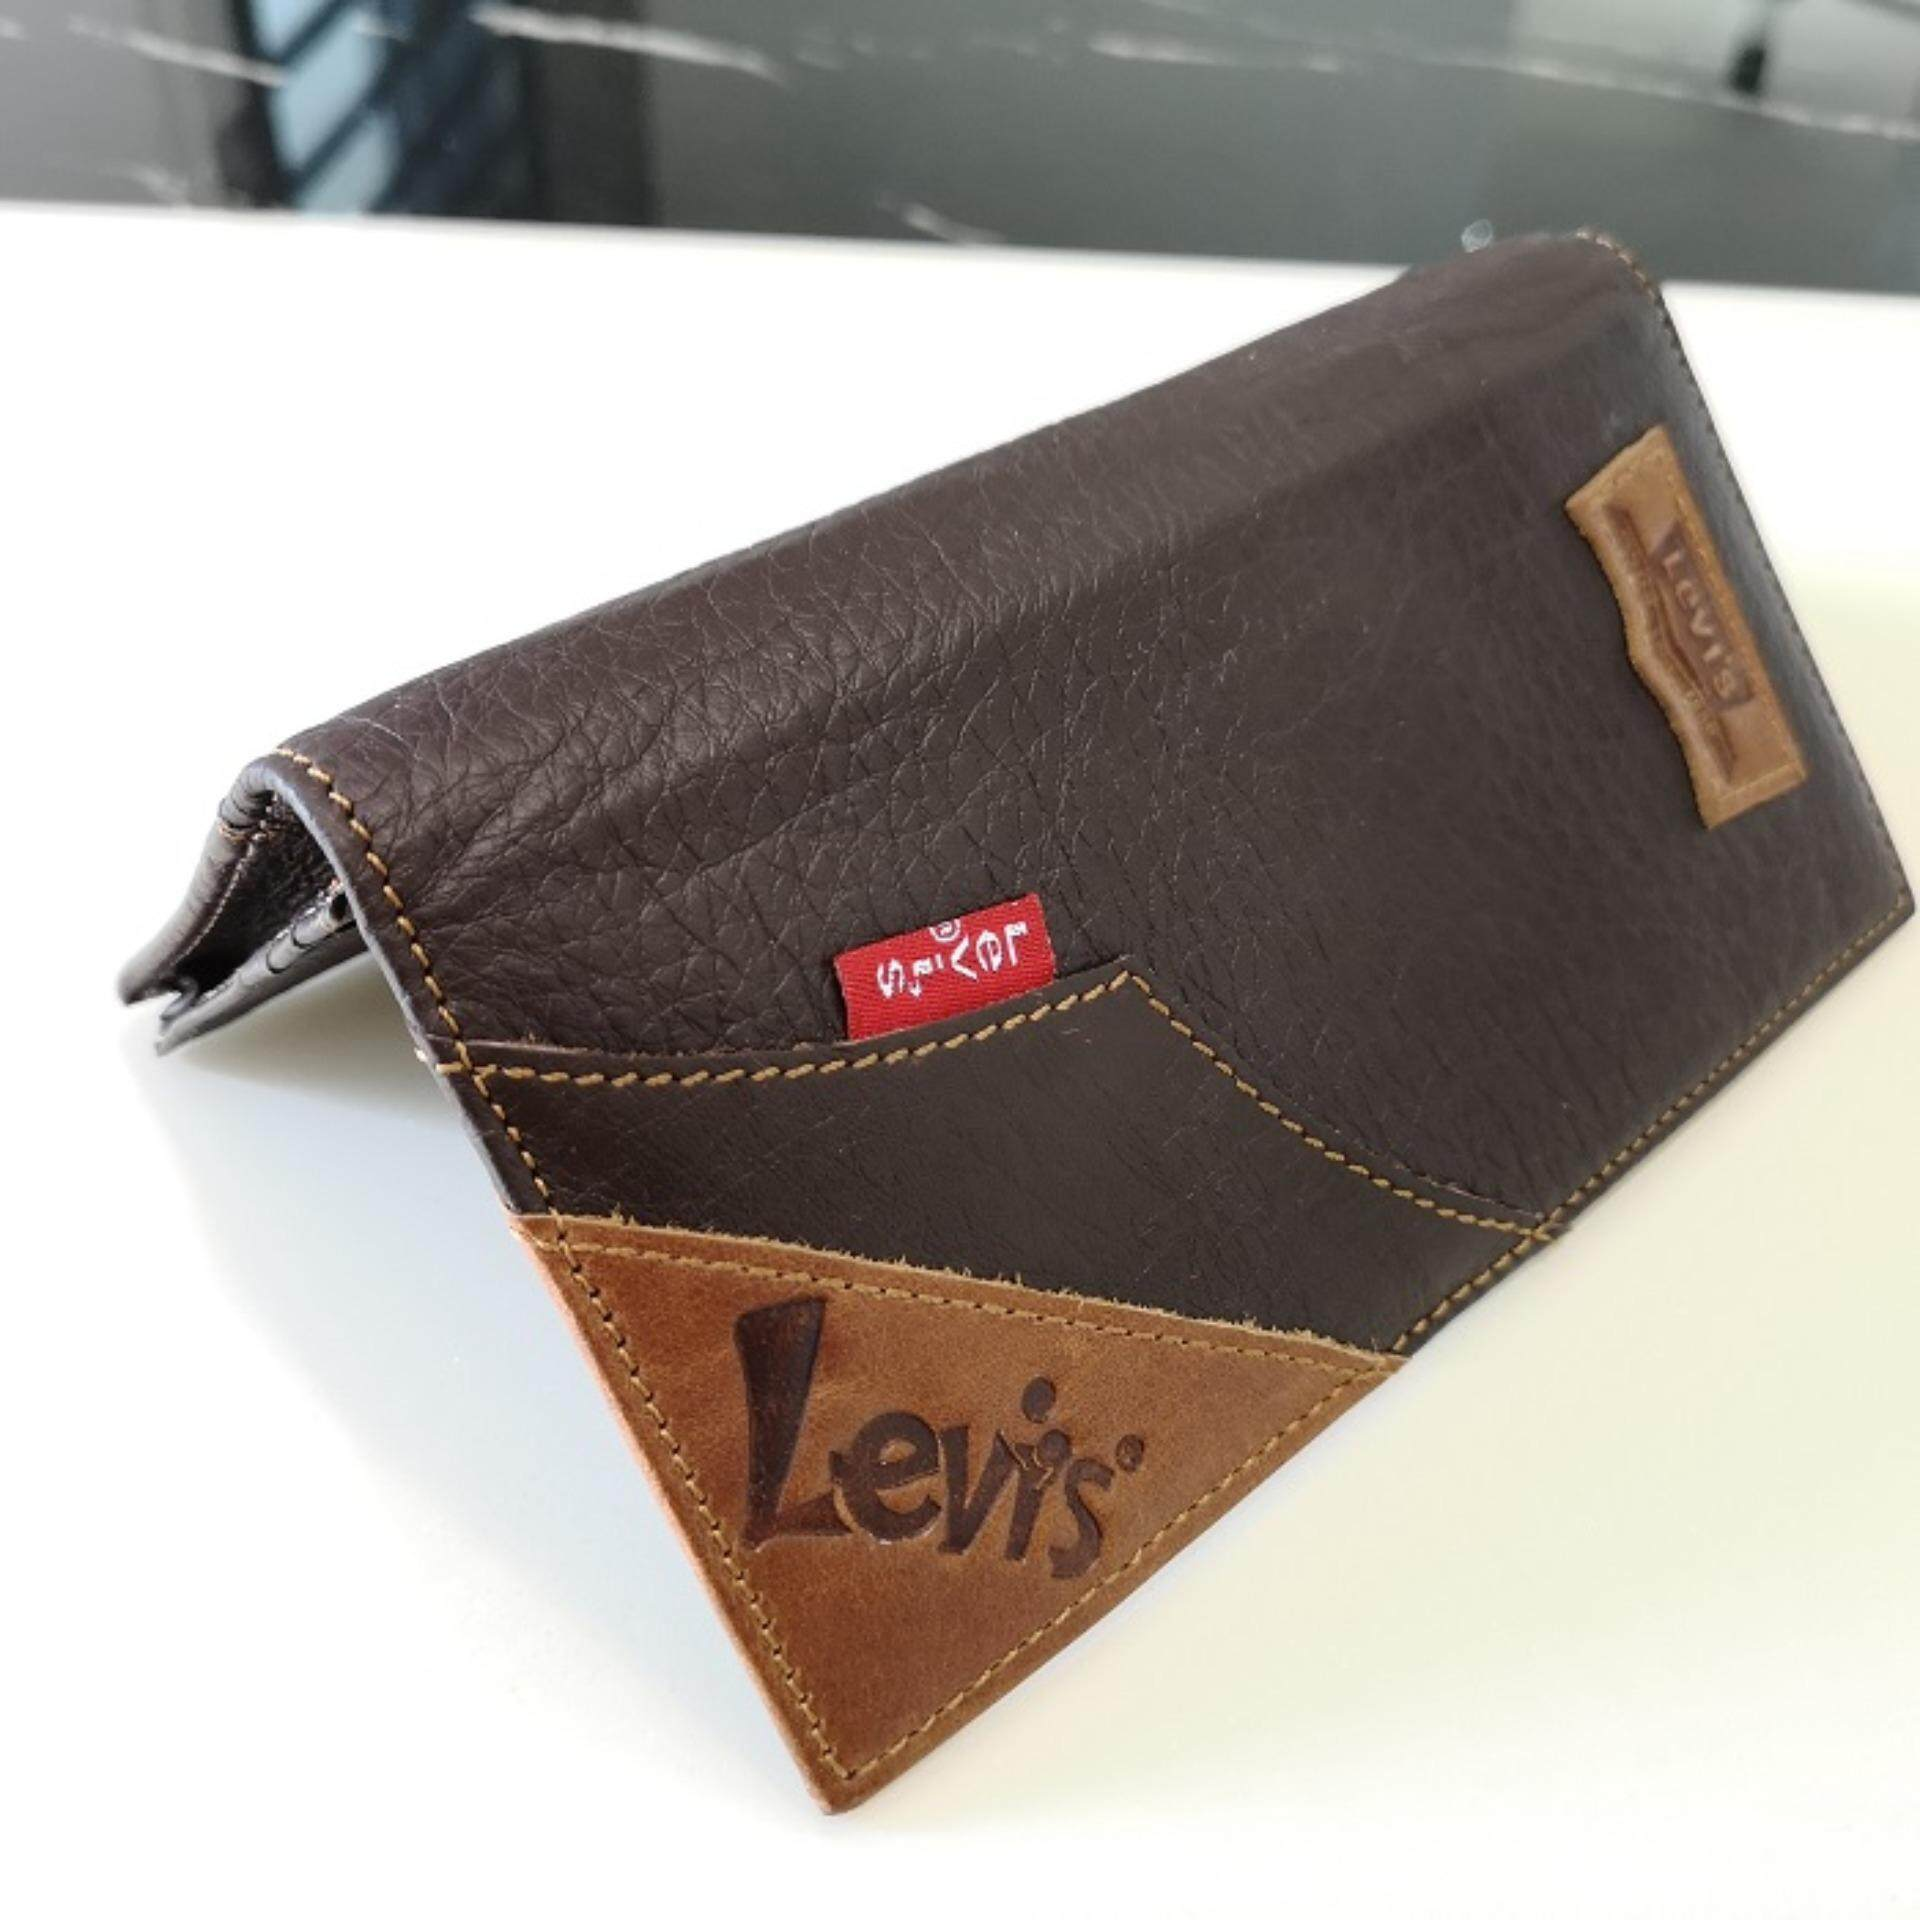 59d6a53ce5eb85 Men Wallets - Buy Men Wallets at Best Price in Malaysia | www.lazada ...